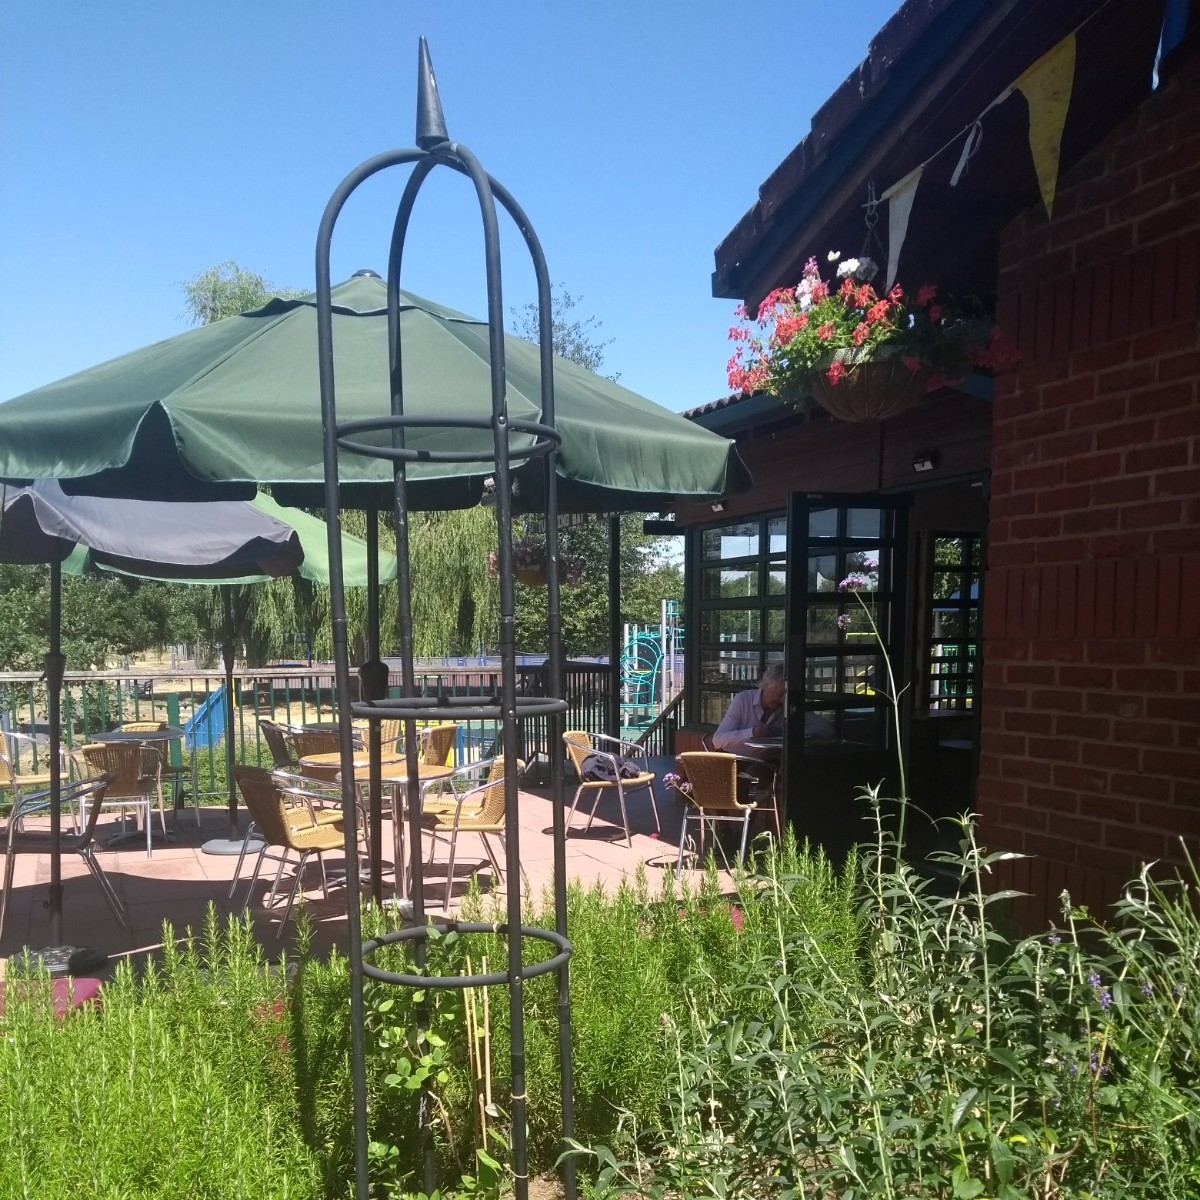 Tumbling Bay Cafe - Hidden at the back of West Oxford Community Centre, overlooking a beautiful park and moments away from the Thames Path, this is a little gem.West Oxford Community Centre, Botley Road, OX2 0BT01865 245761